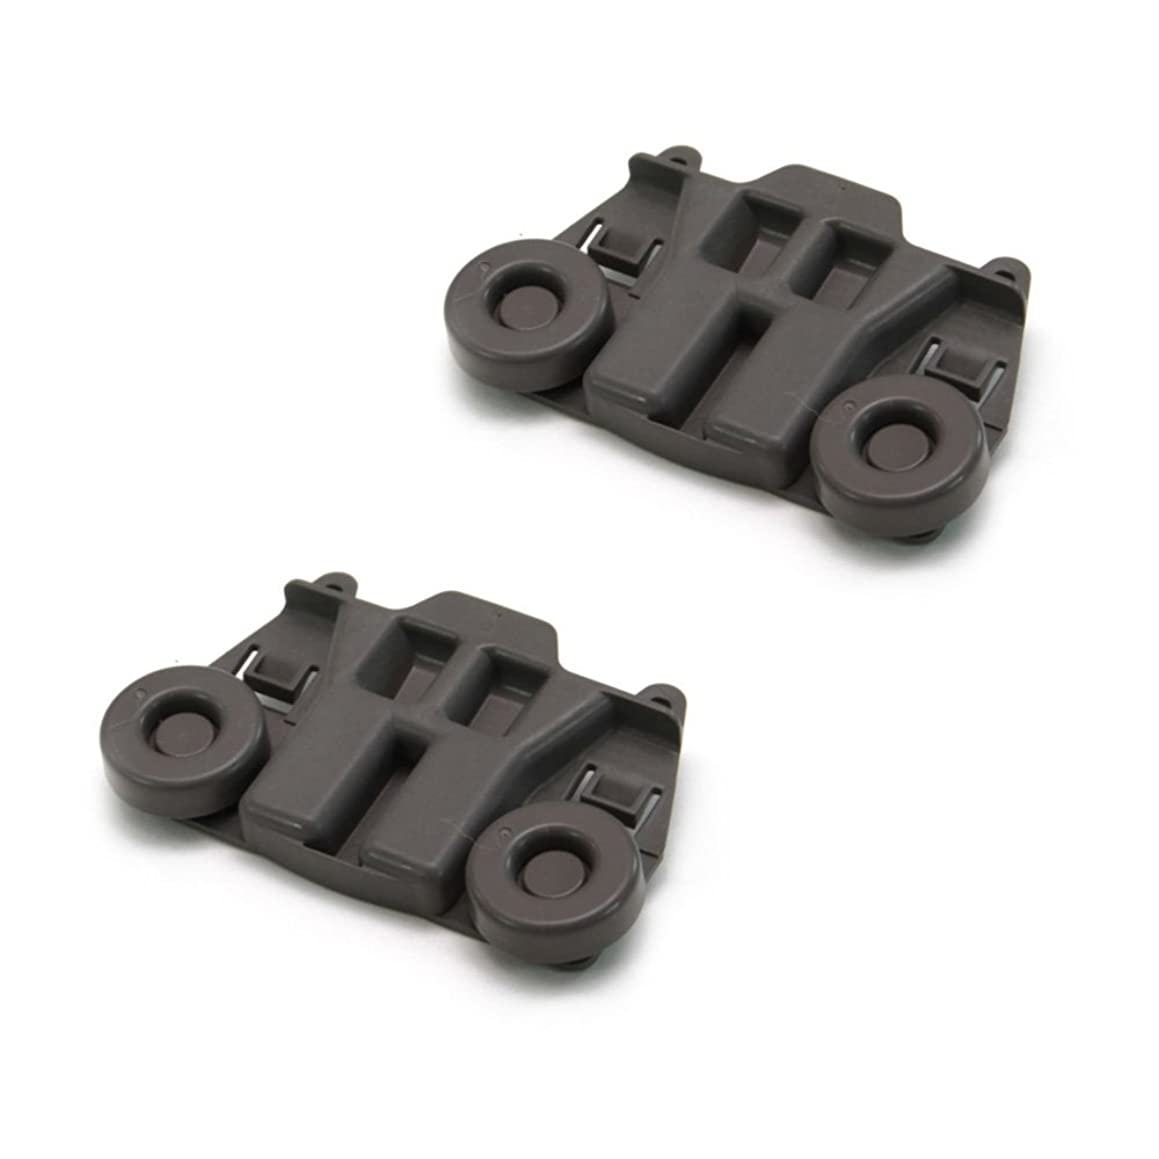 Protac New 2 PCS For Whirlpool W10195417 Dishwasher Rack Roller WPW10195417 AP4538395 PS2579553